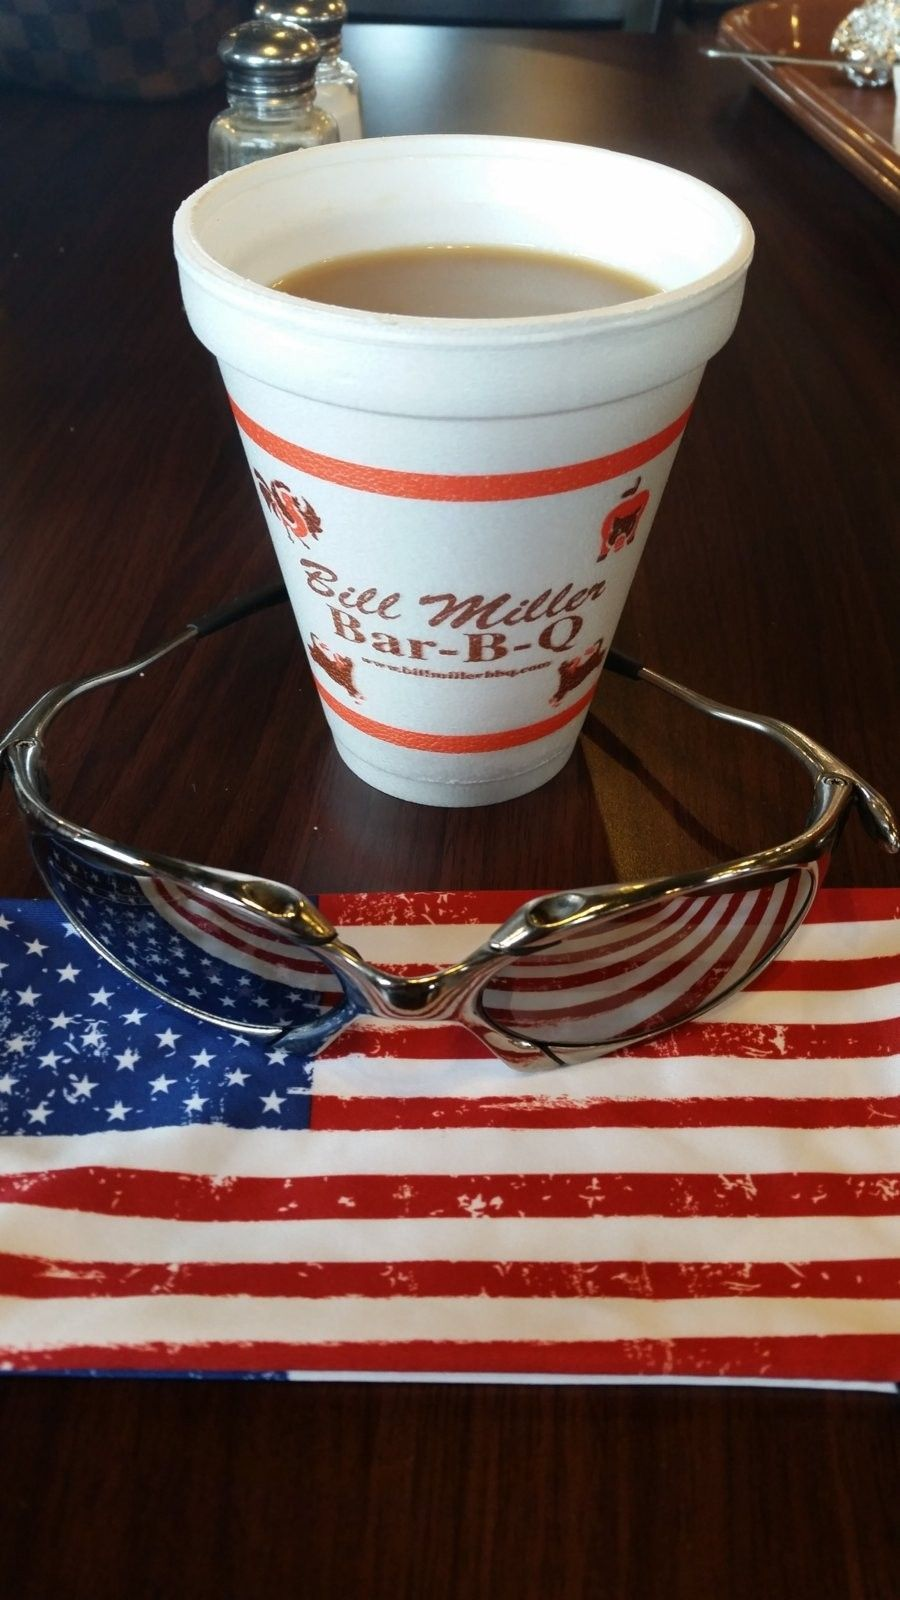 Let's see your Independence Day tribute! Happy 4th of July! - 20160704_115318.jpg